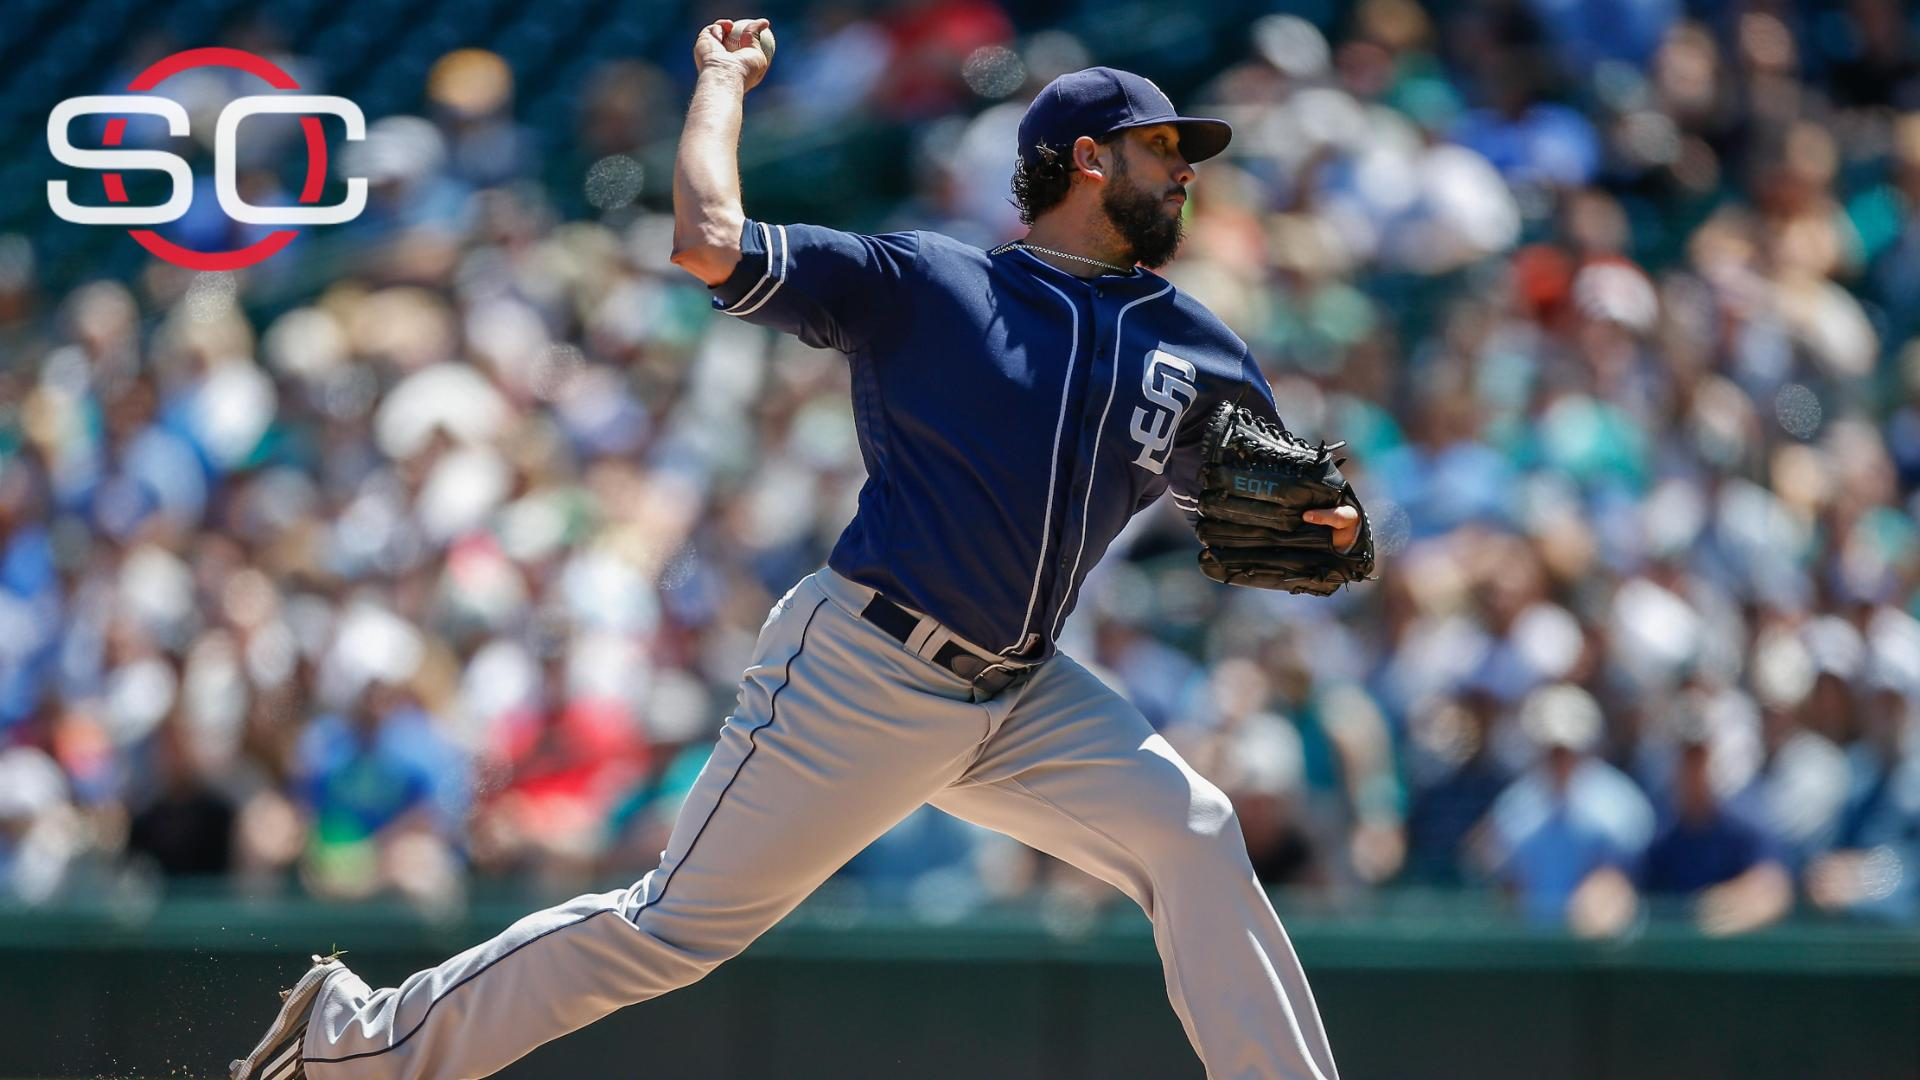 http://a.espncdn.com/media/motion/2016/0605/dm_160605_mlb_buster_olney_on_james_shields_trade853/dm_160605_mlb_buster_olney_on_james_shields_trade853.jpg